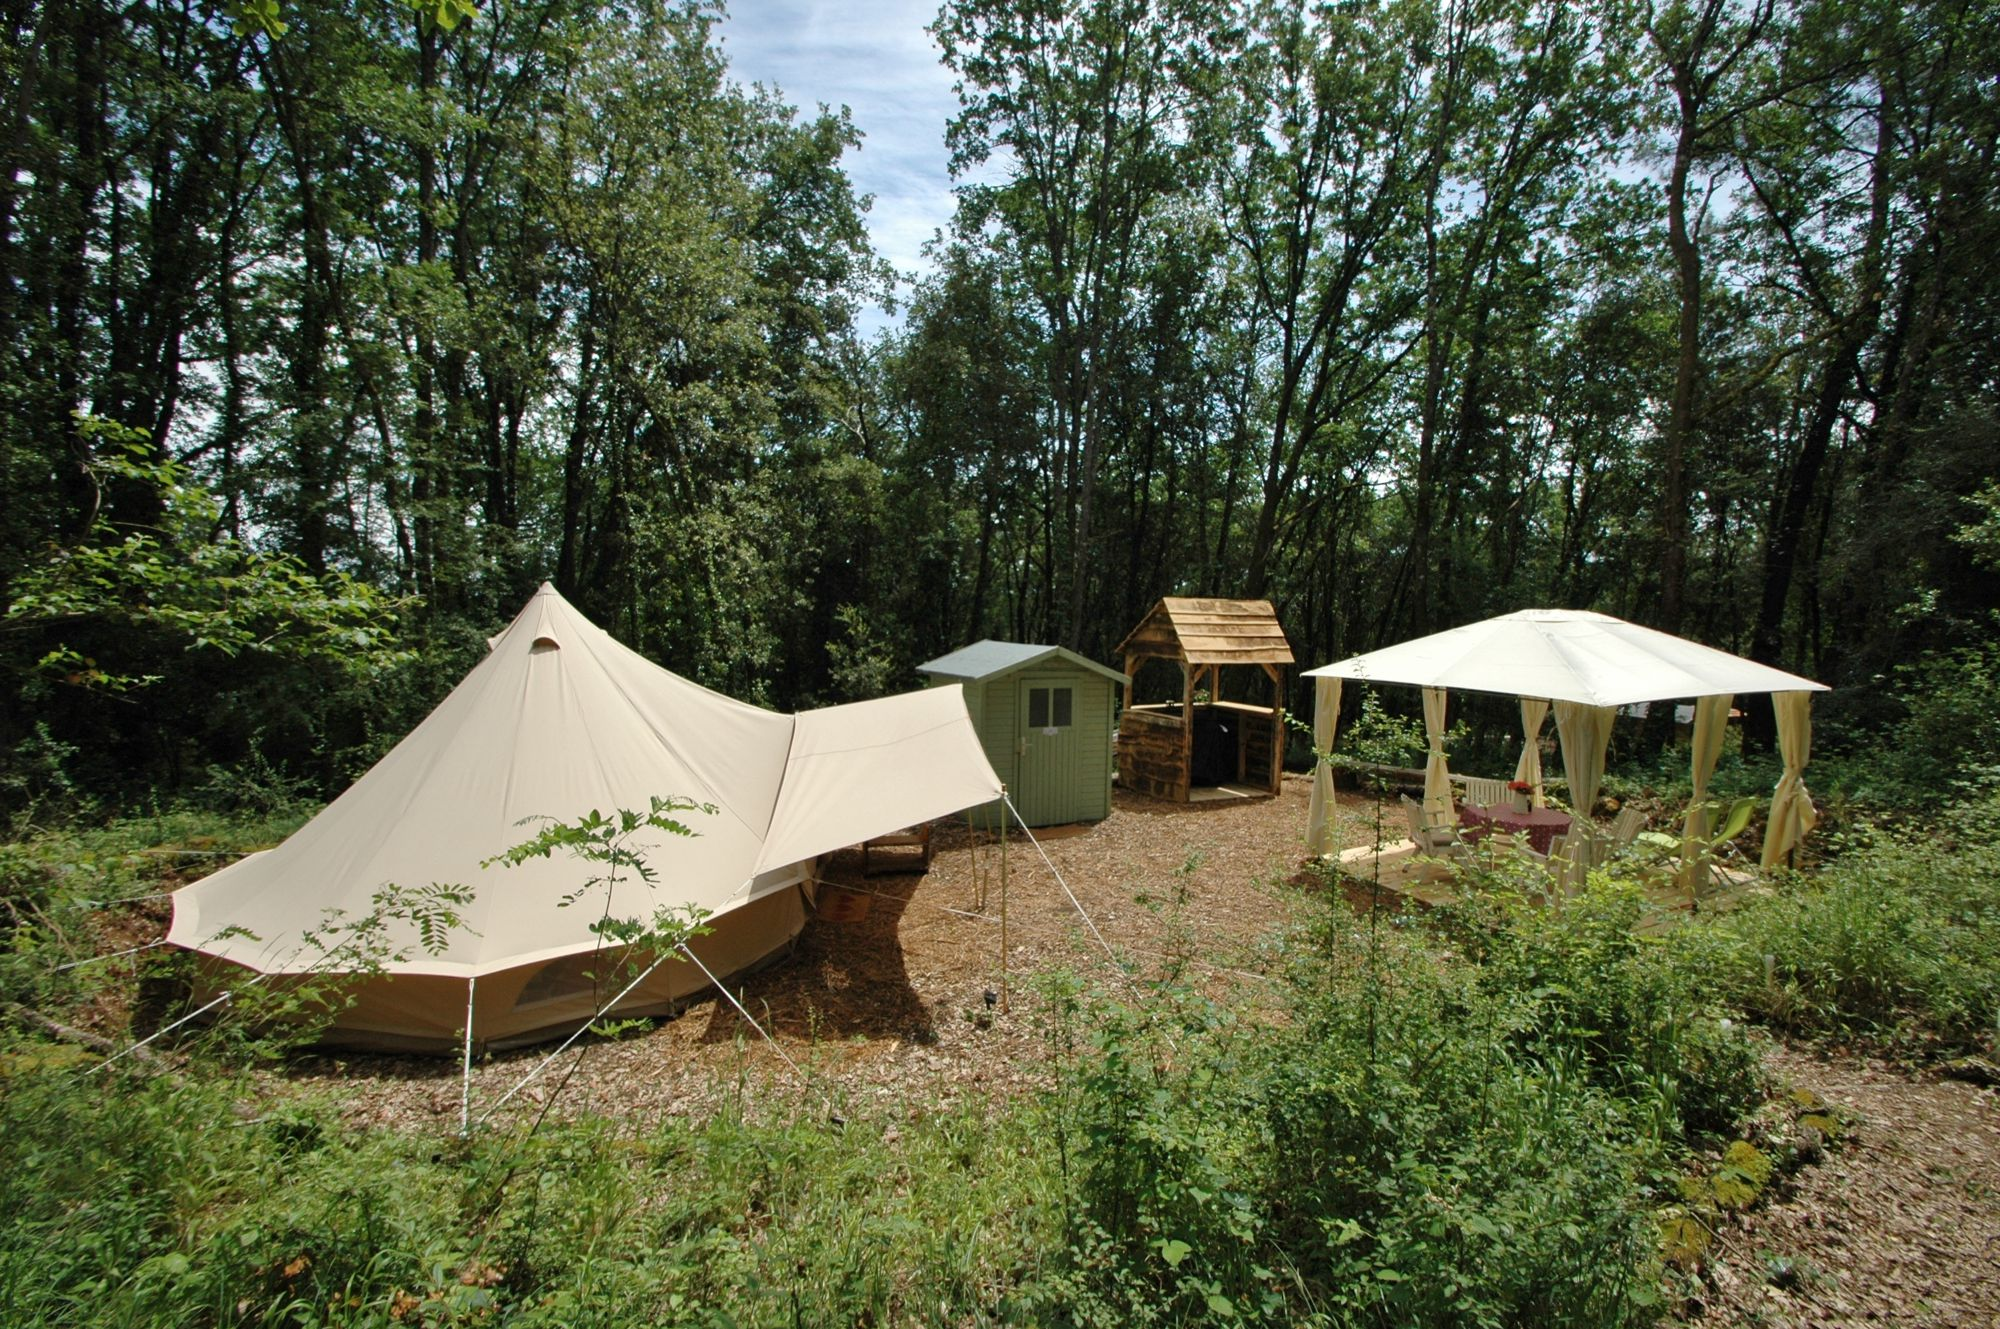 Luxury camping in the idyllic Dordogne Valley.